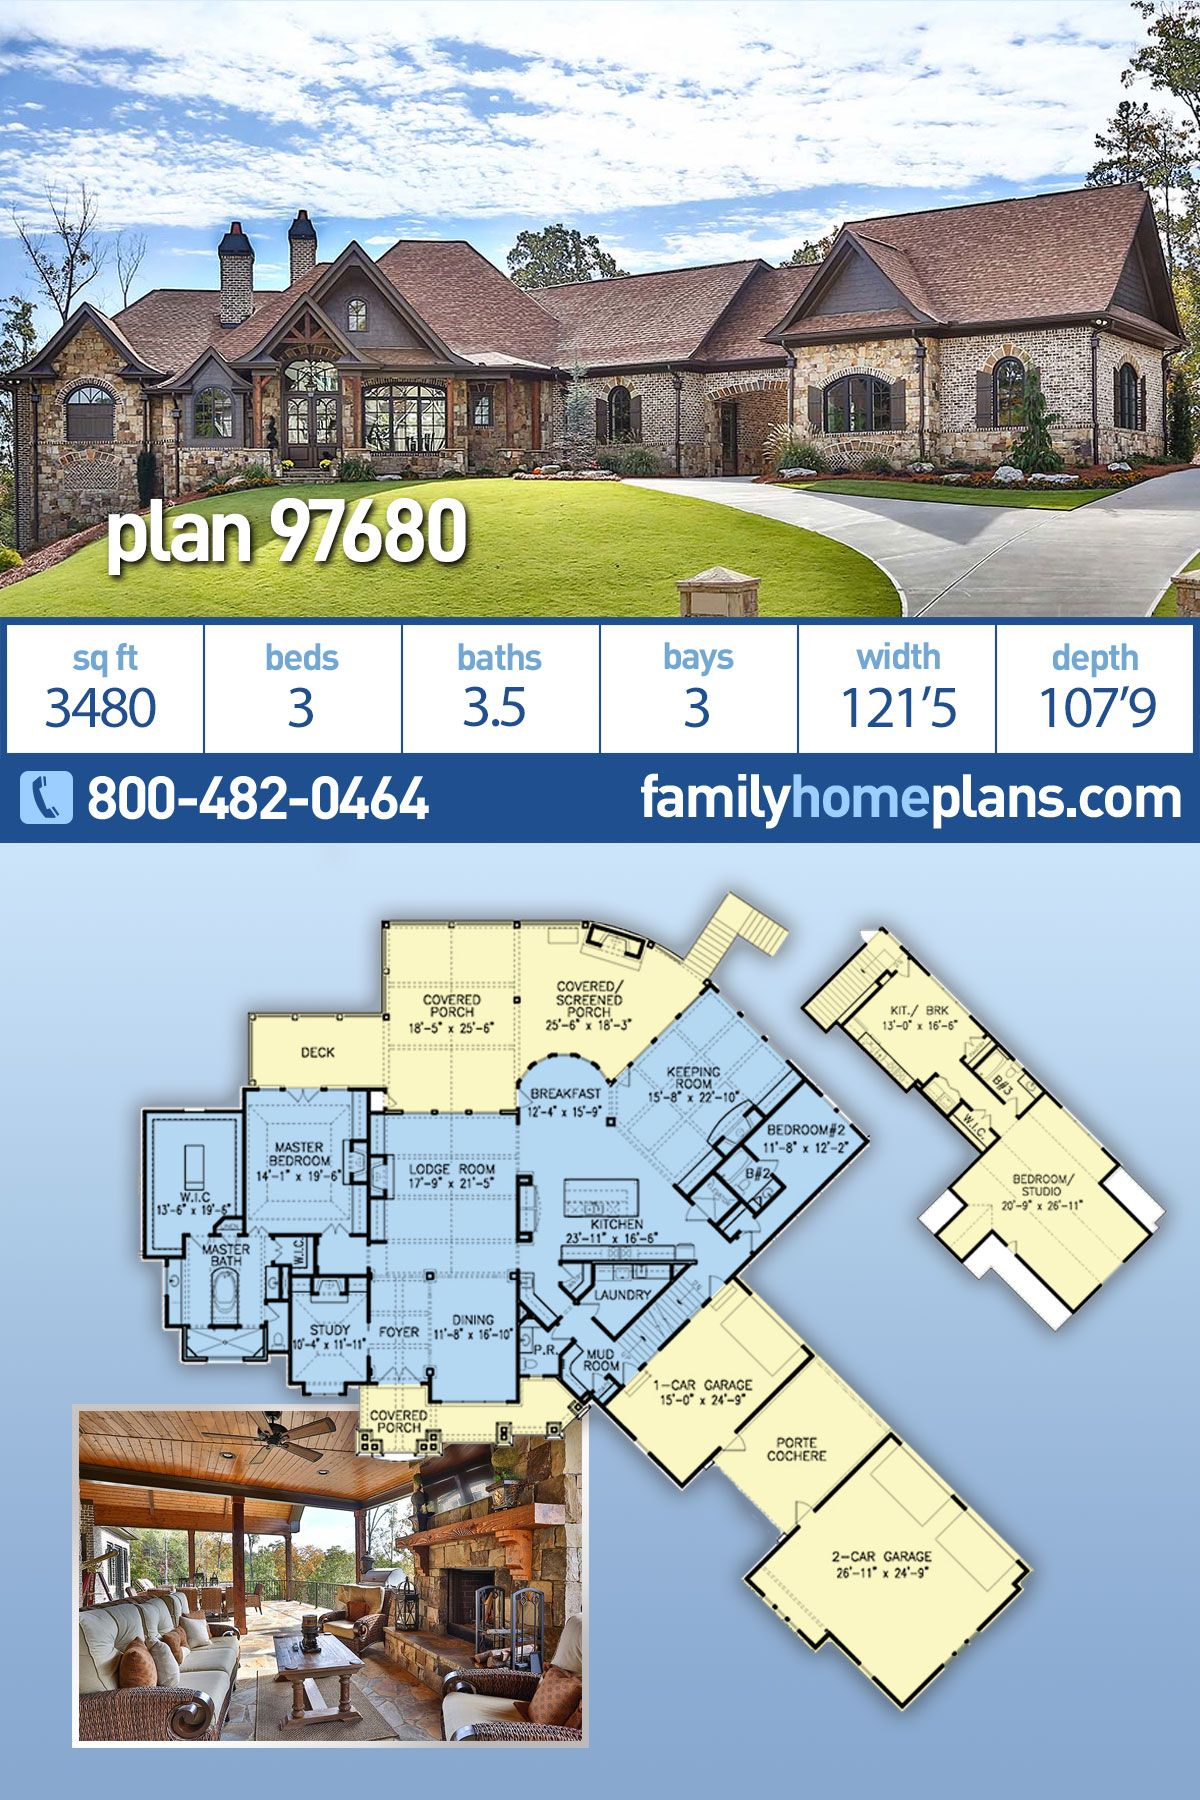 Tuscan Style House Plan 97680 With 3 Bed 4 Bath 3 Car Garage Luxury Craftsman House Plans Family House Plans Tuscan Style